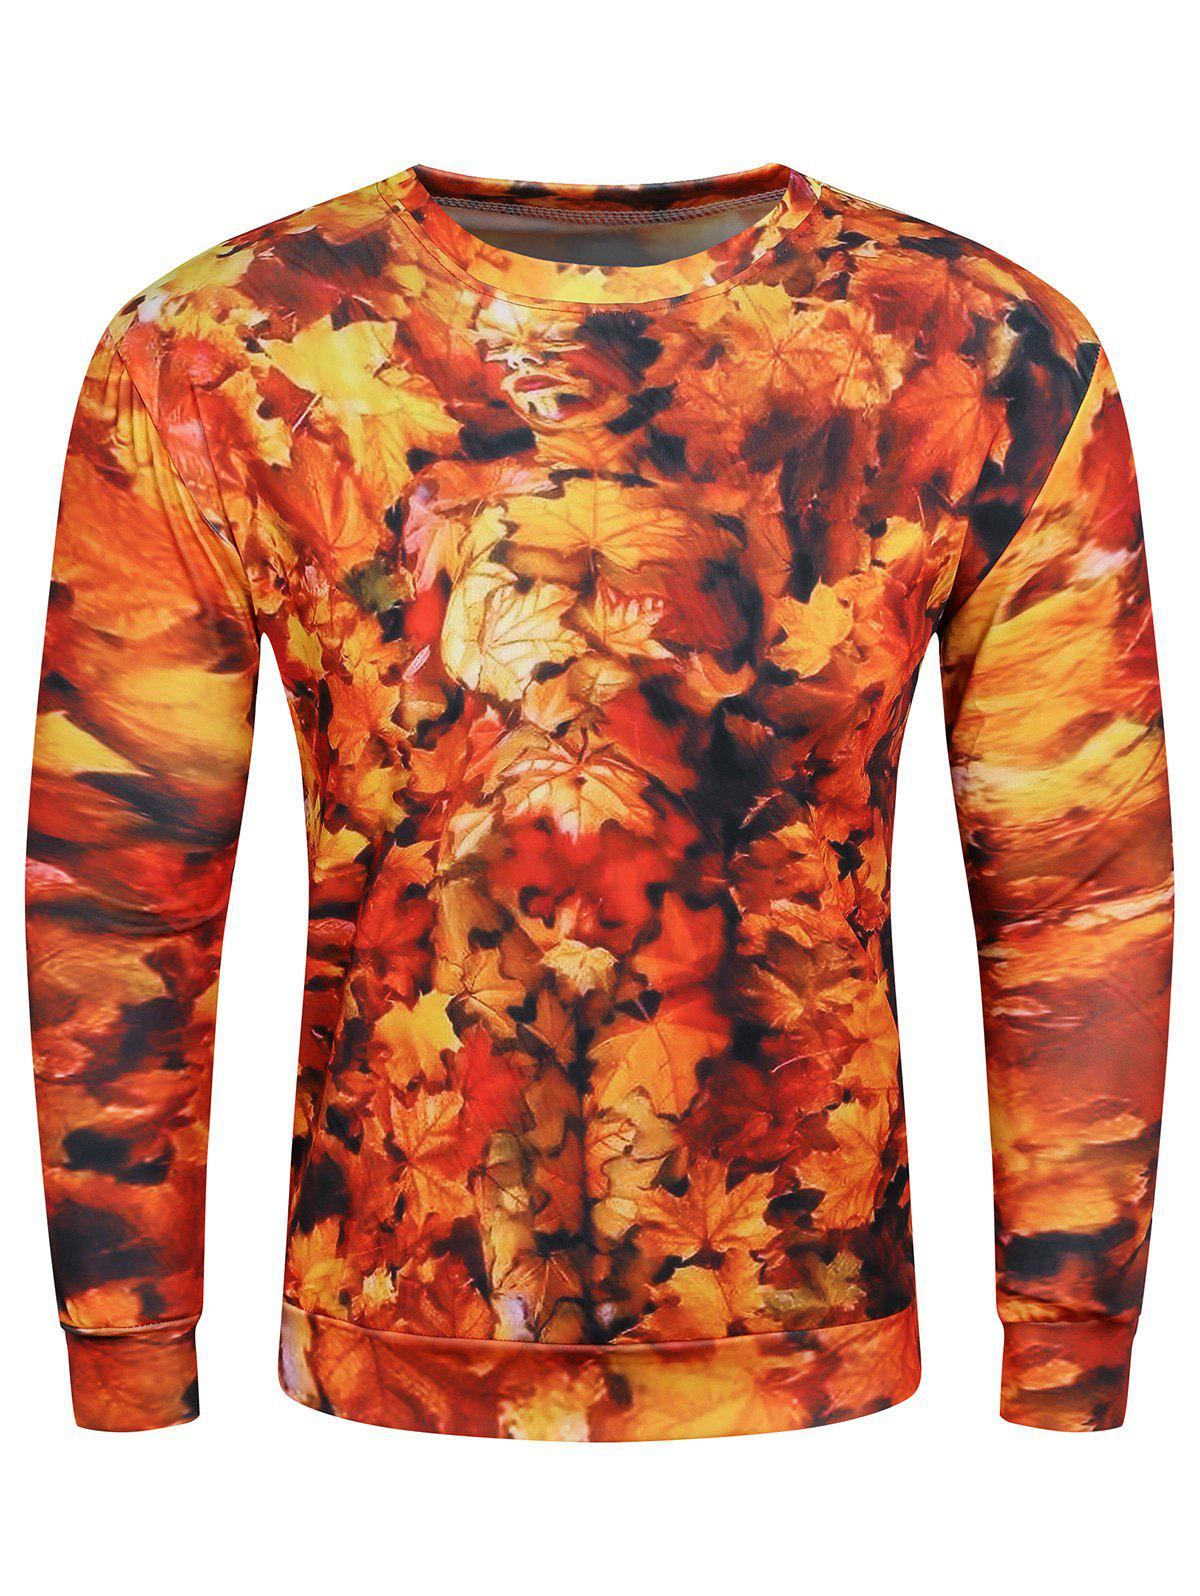 3D Maple Leaves Printed Long Sleeve Crew Neck Sweatshirt